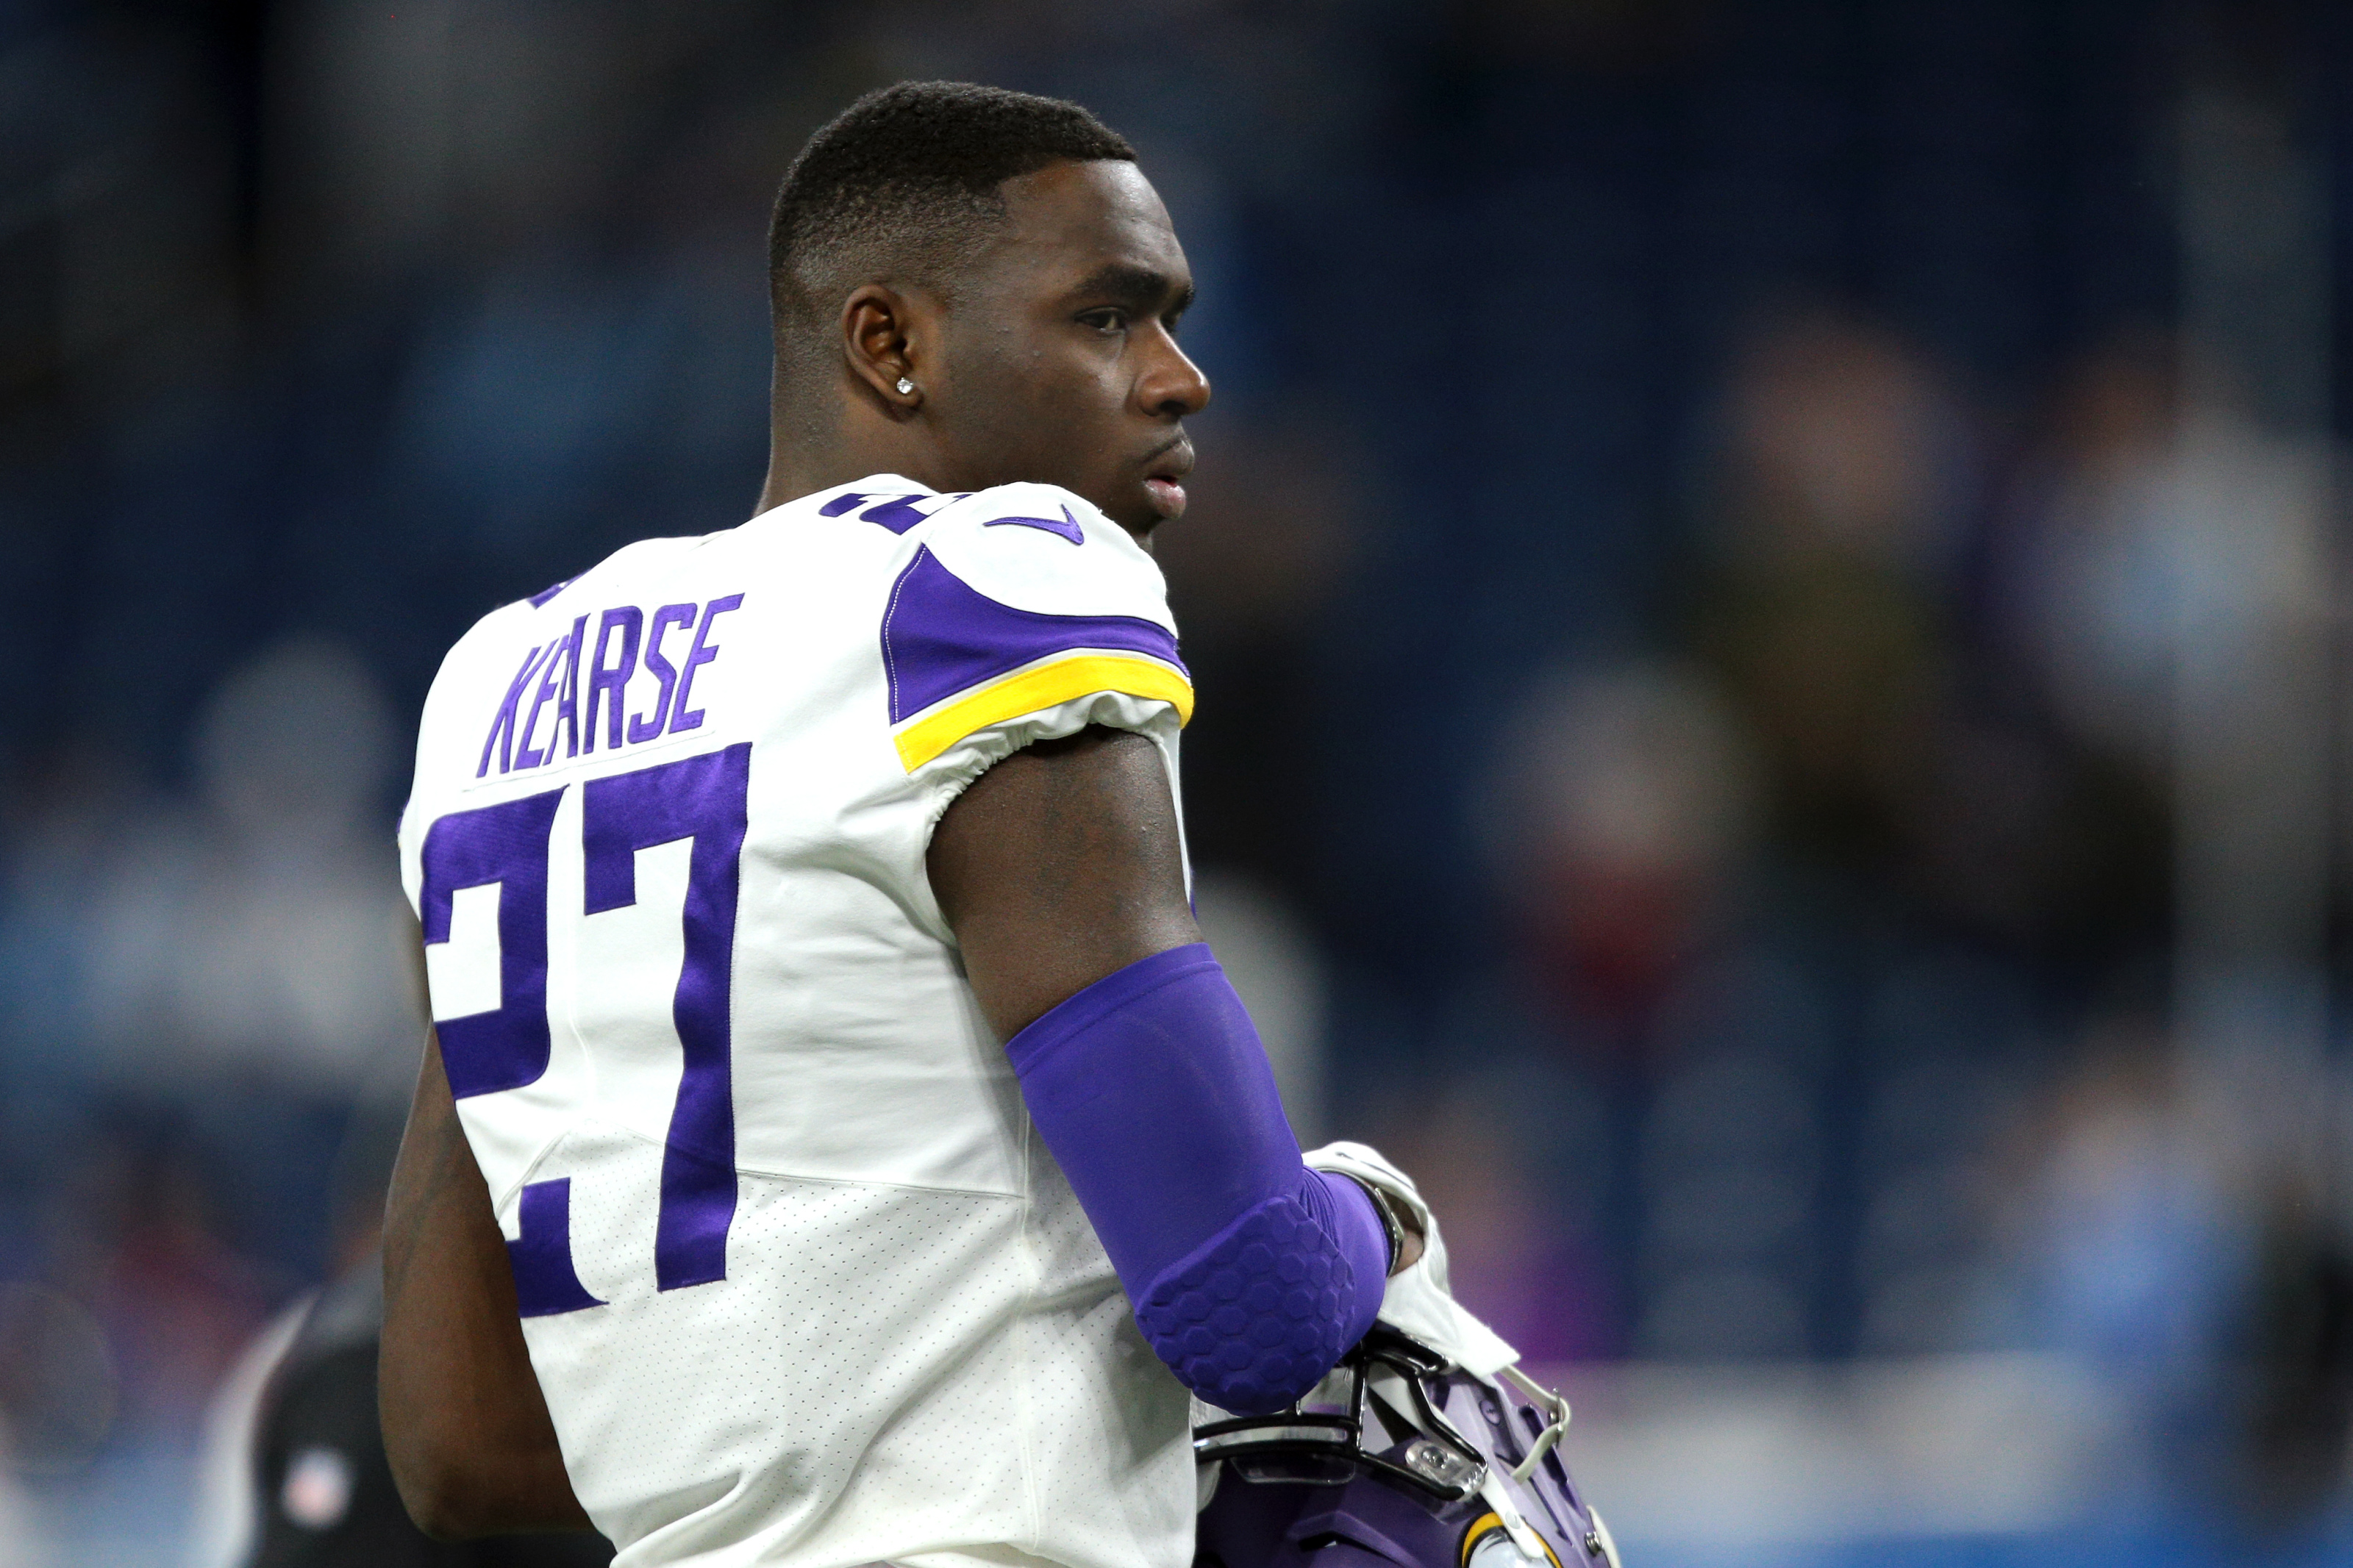 Jayron Kearse says the Vikings don't want him back in 2020